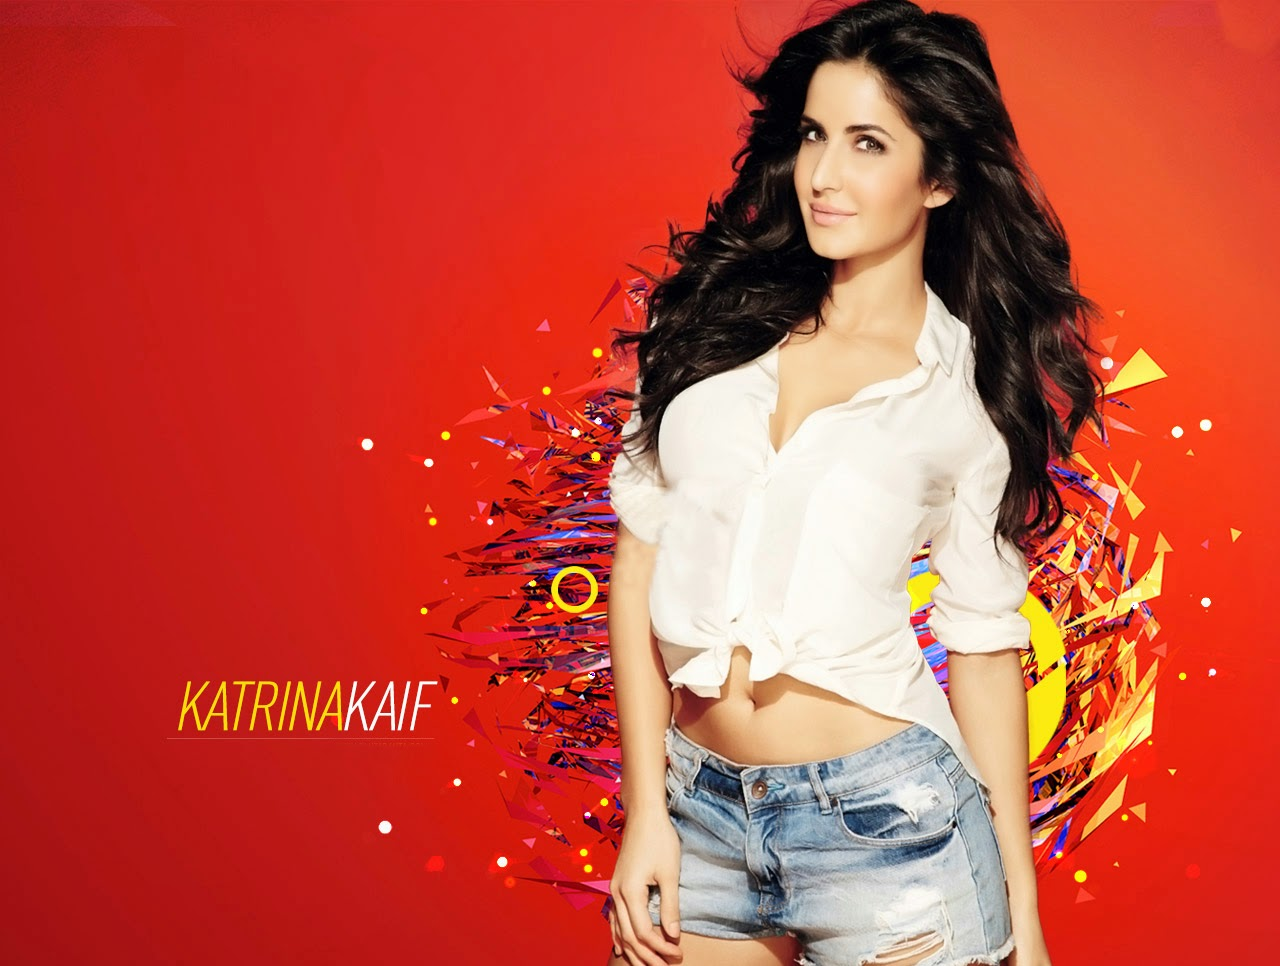 45 Hot Katrina Kaif Wallpapers Collection